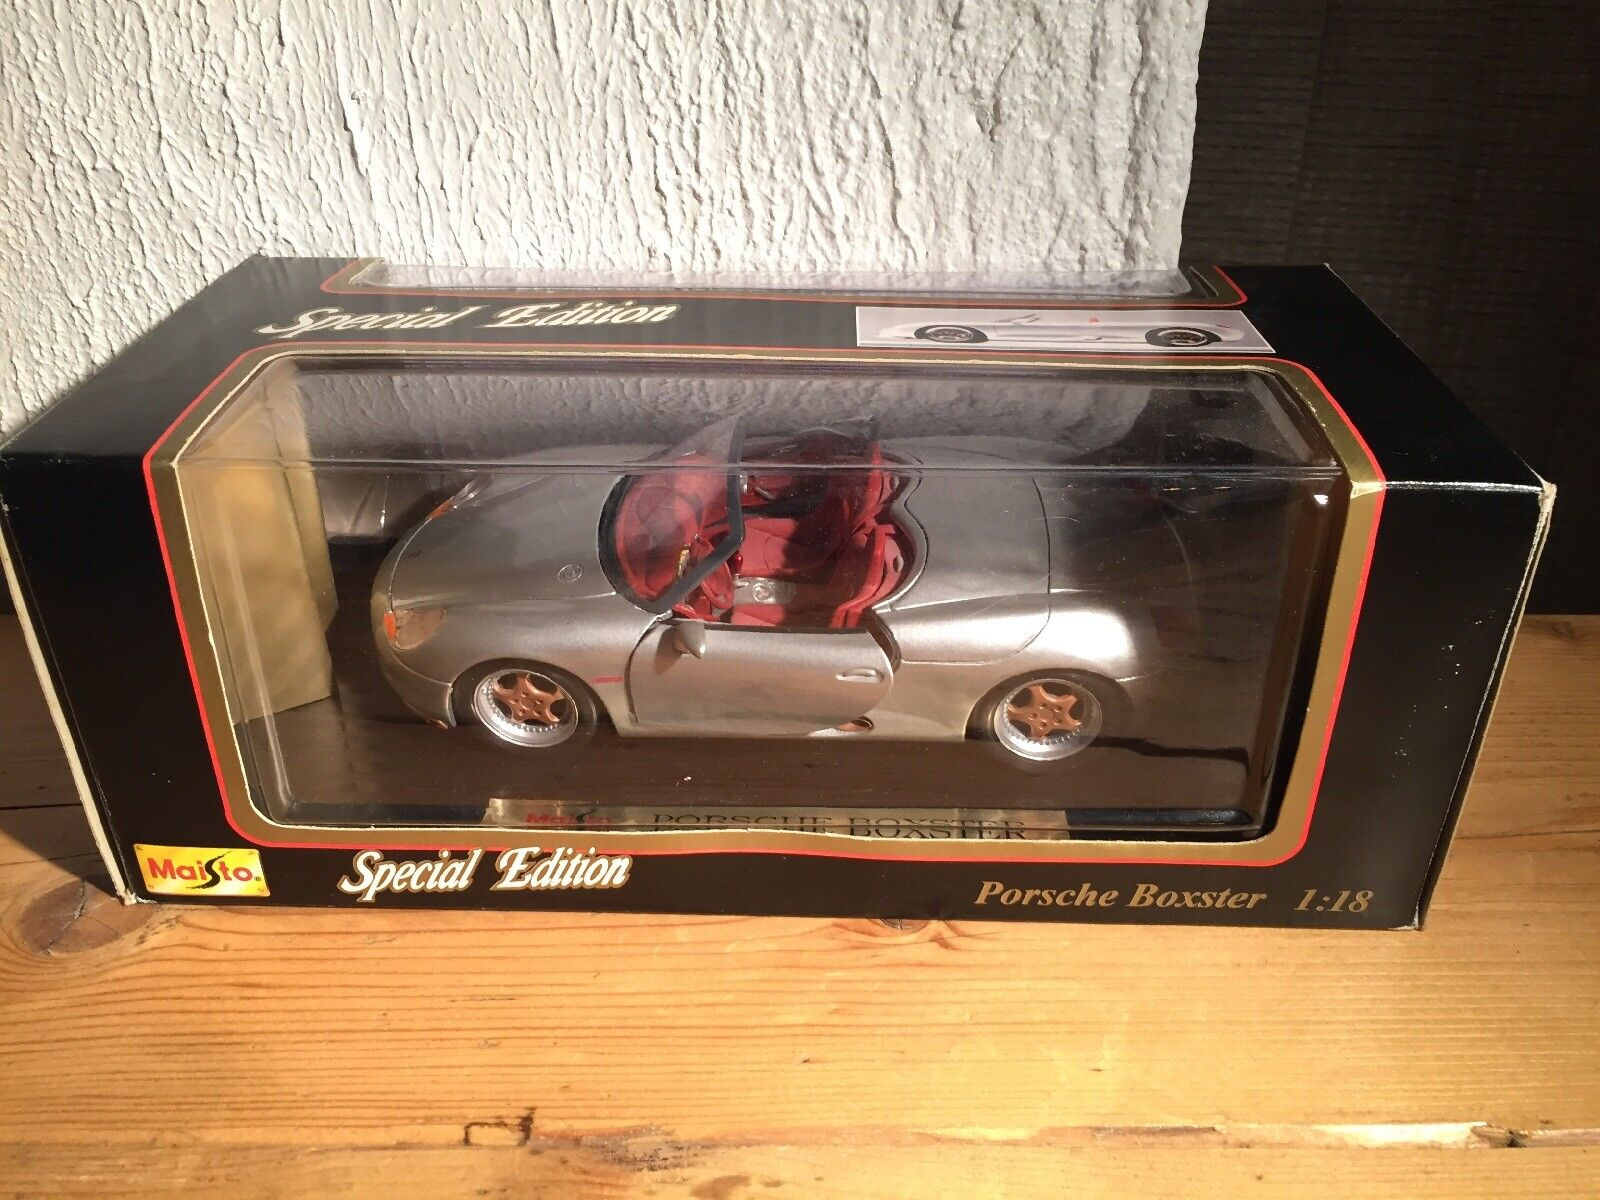 Maisto Porsche Boxter 1 18 Special Edition Die Cast New Boxed